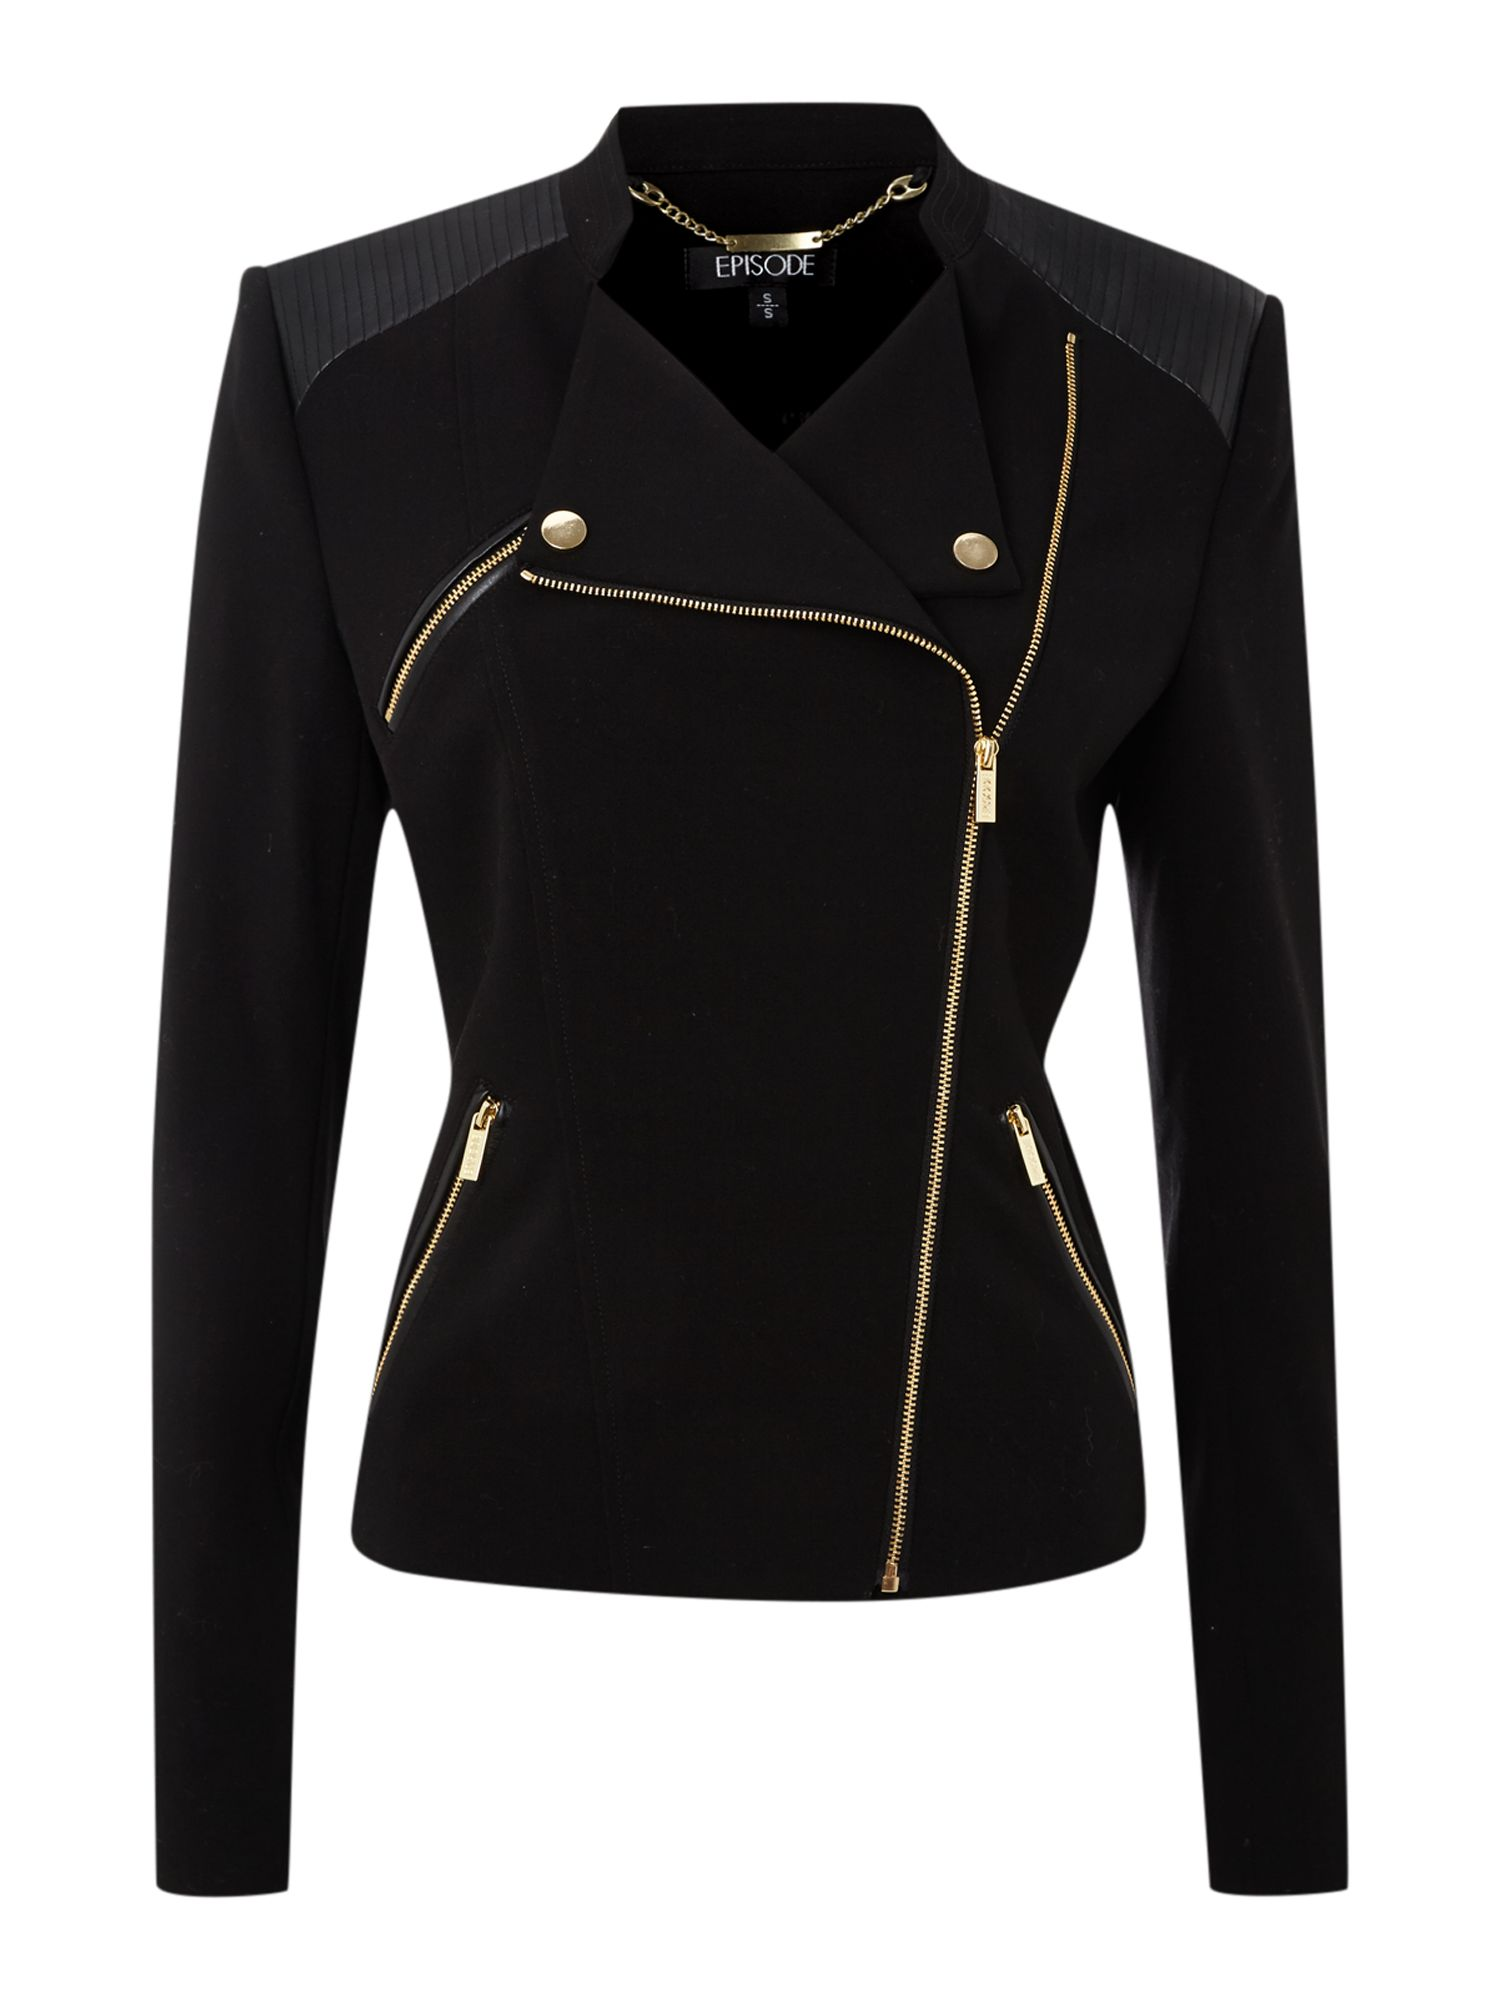 Jacket with PU shoulders and zip details